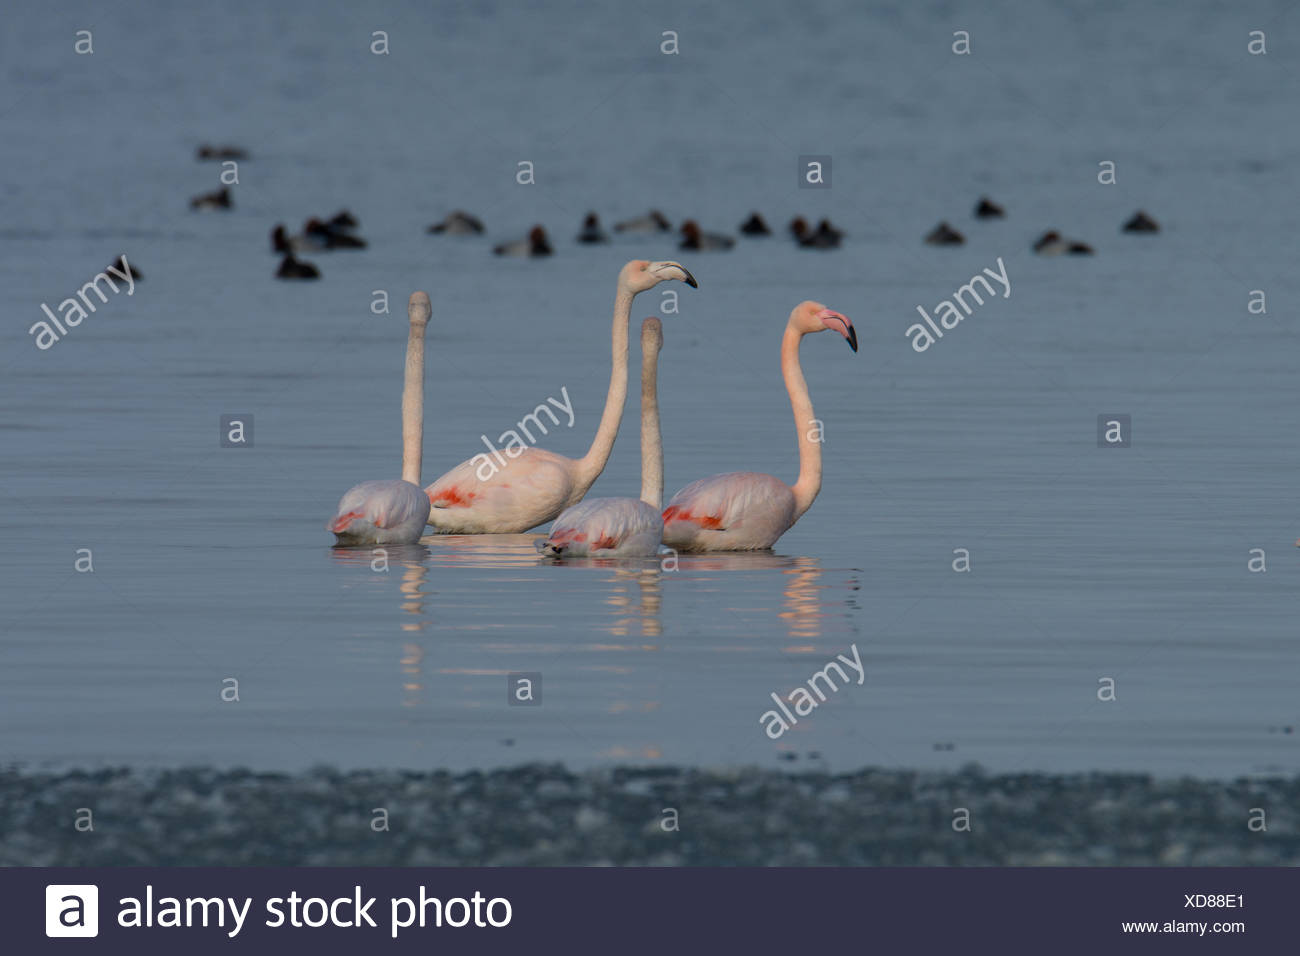 Switzerland, Thurgau, Lake Bodensee, avian, tetrapod vertebrates, flamingos, phoenicopteriformes, winter - Stock Image